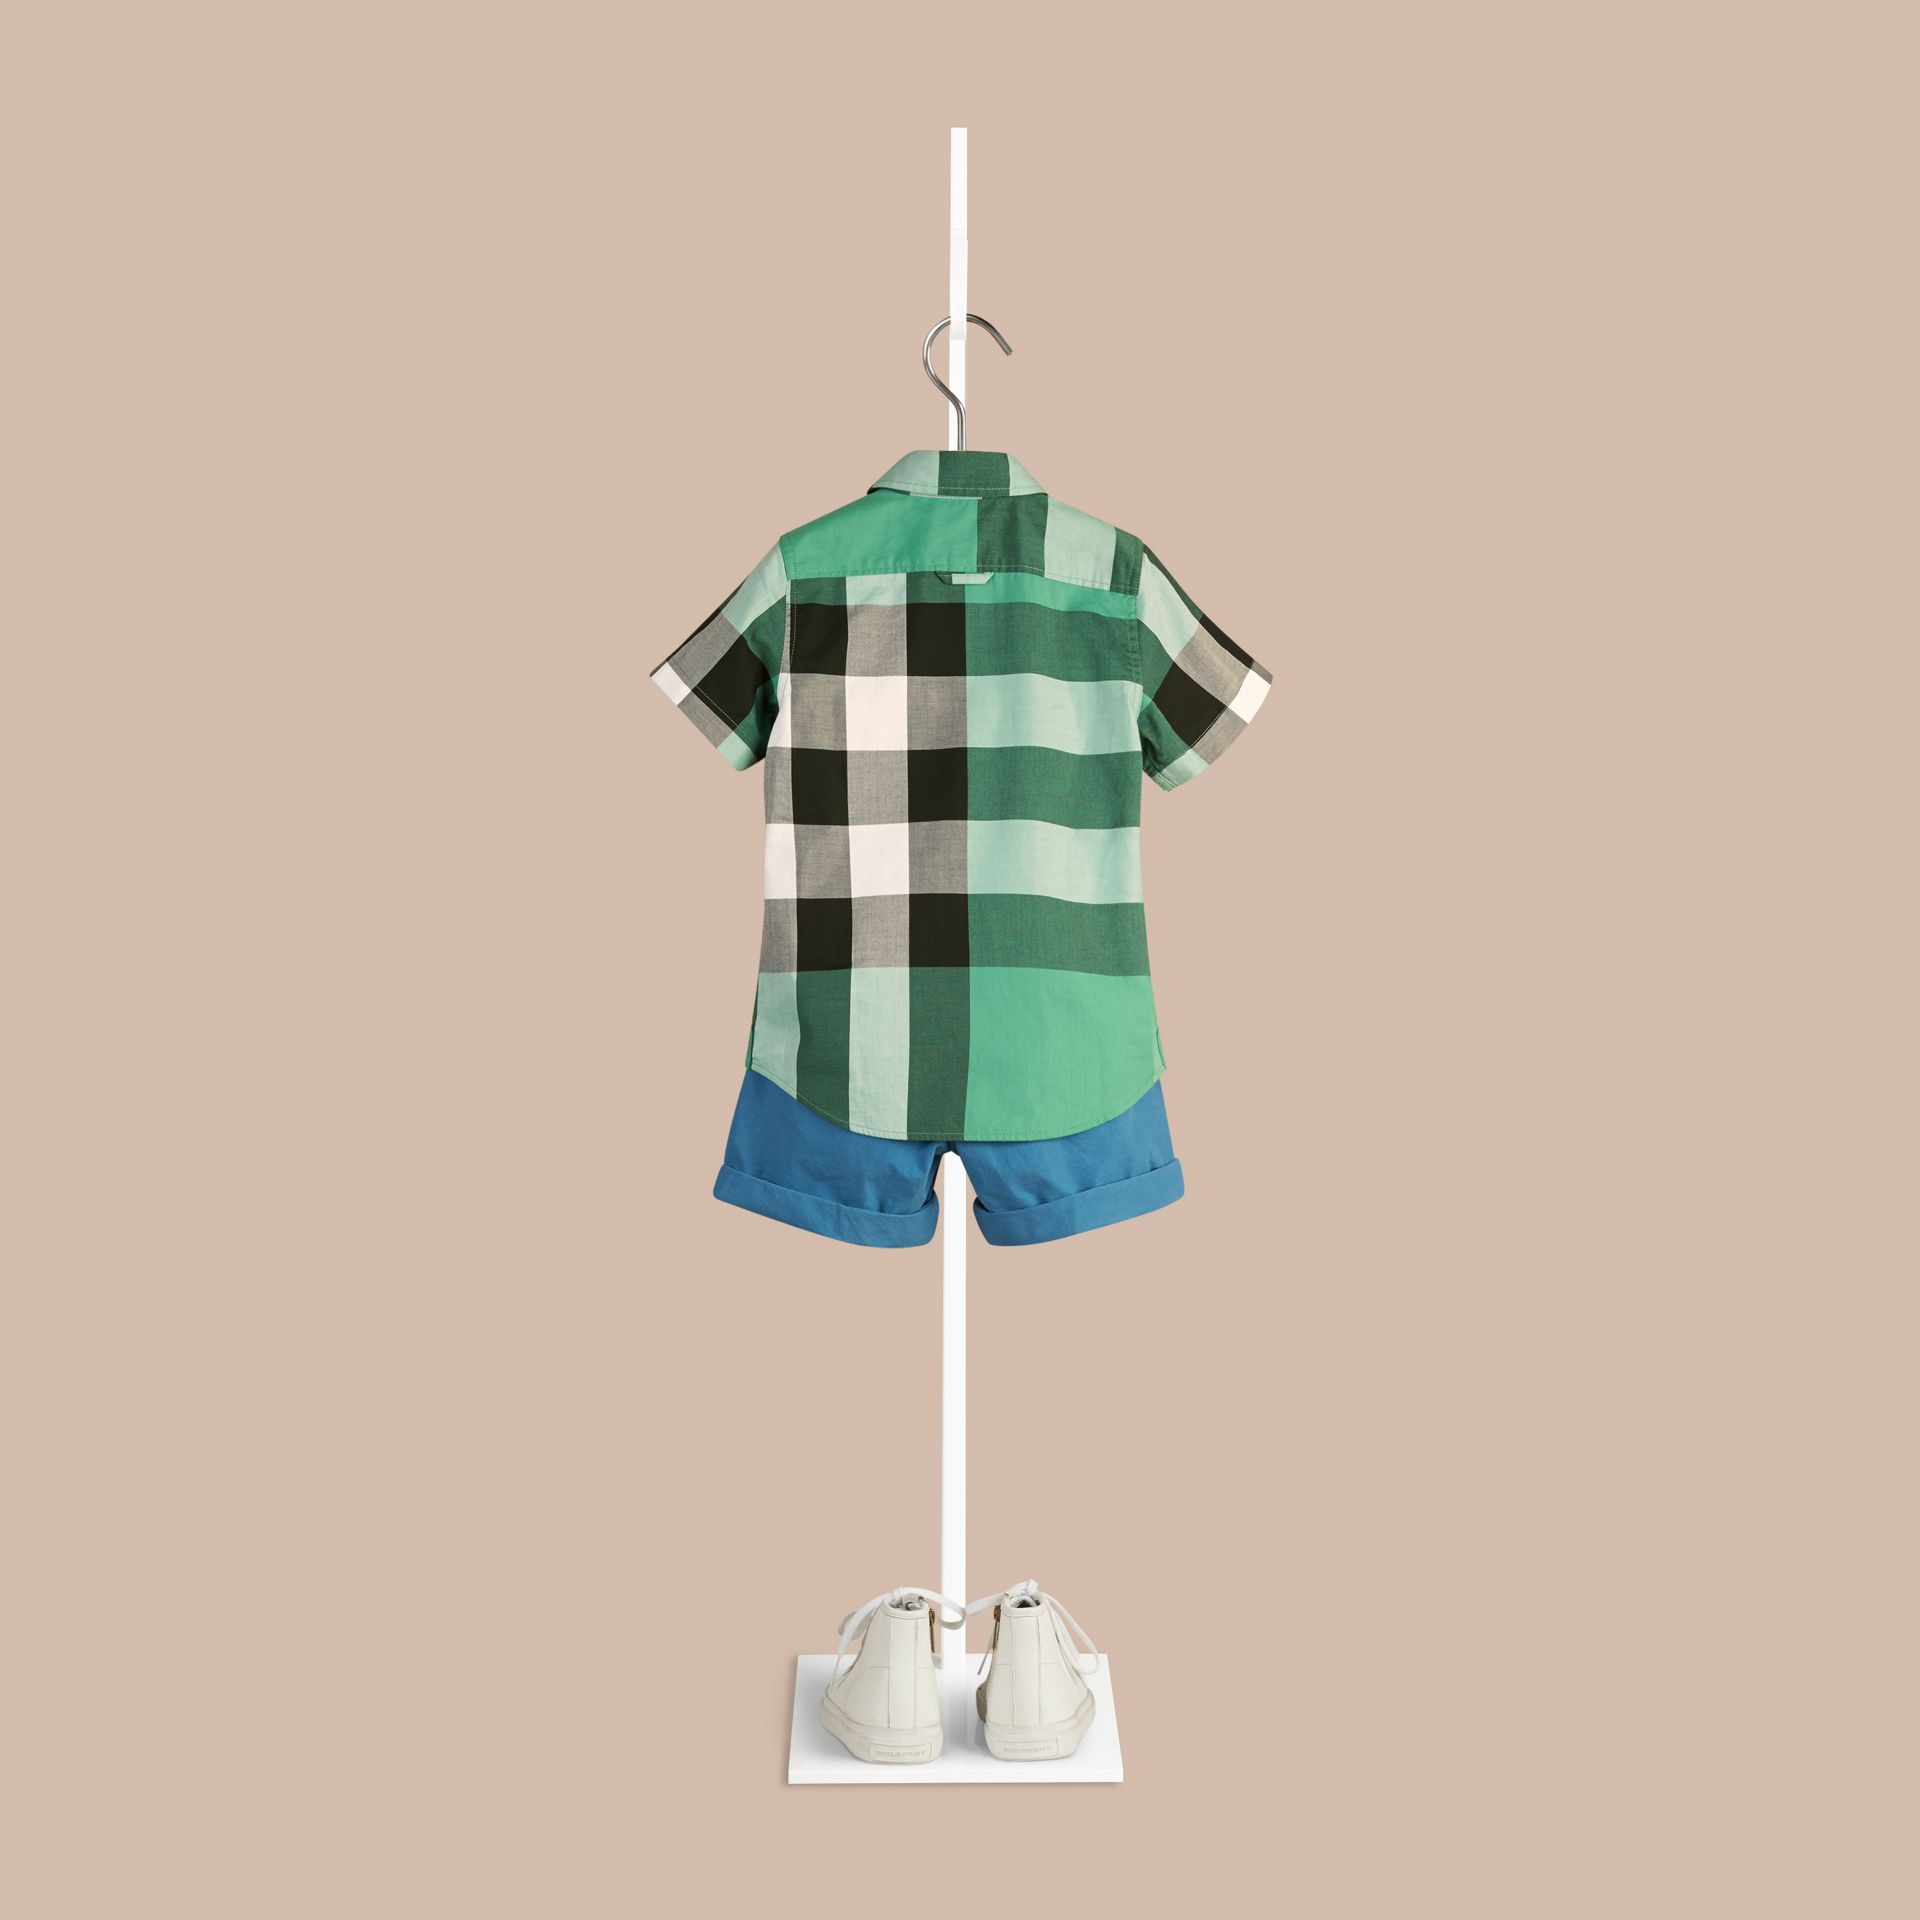 Aqua green Short-sleeved Check Cotton Shirt Aqua Green - gallery image 2